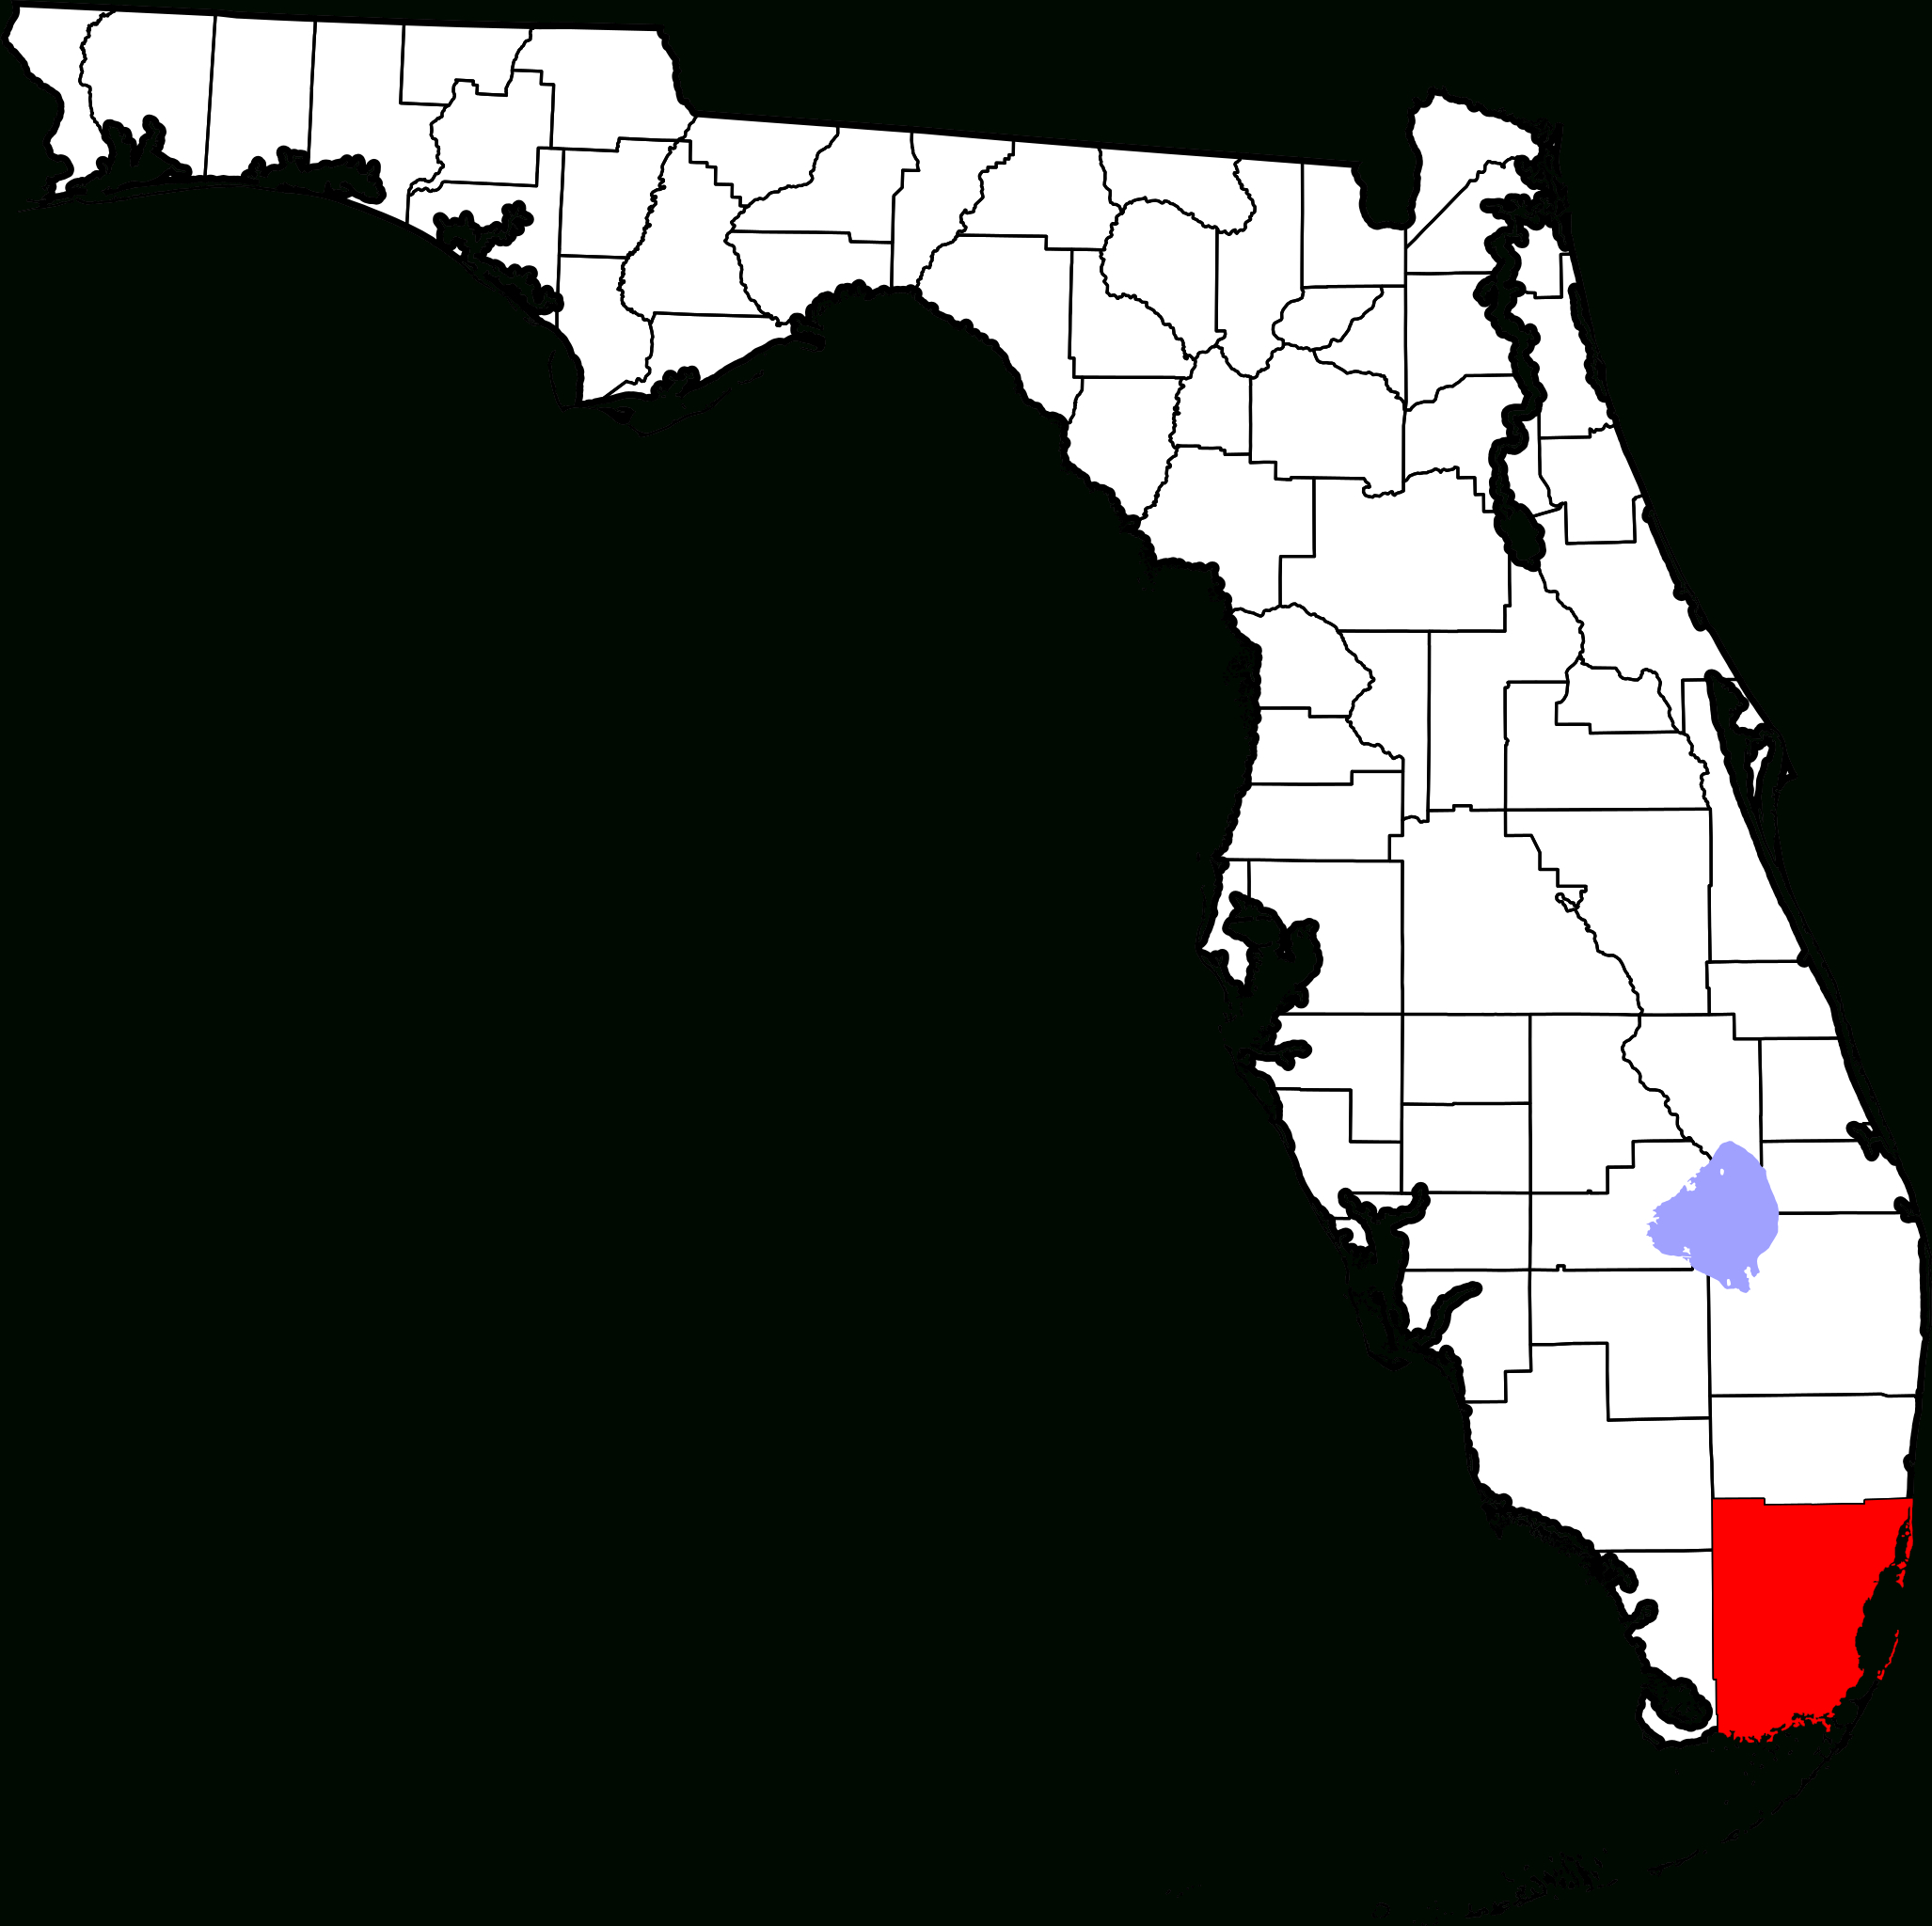 File:map Of Florida Highlighting Miami-Dade County.svg - Wikipedia - Medley Florida Map